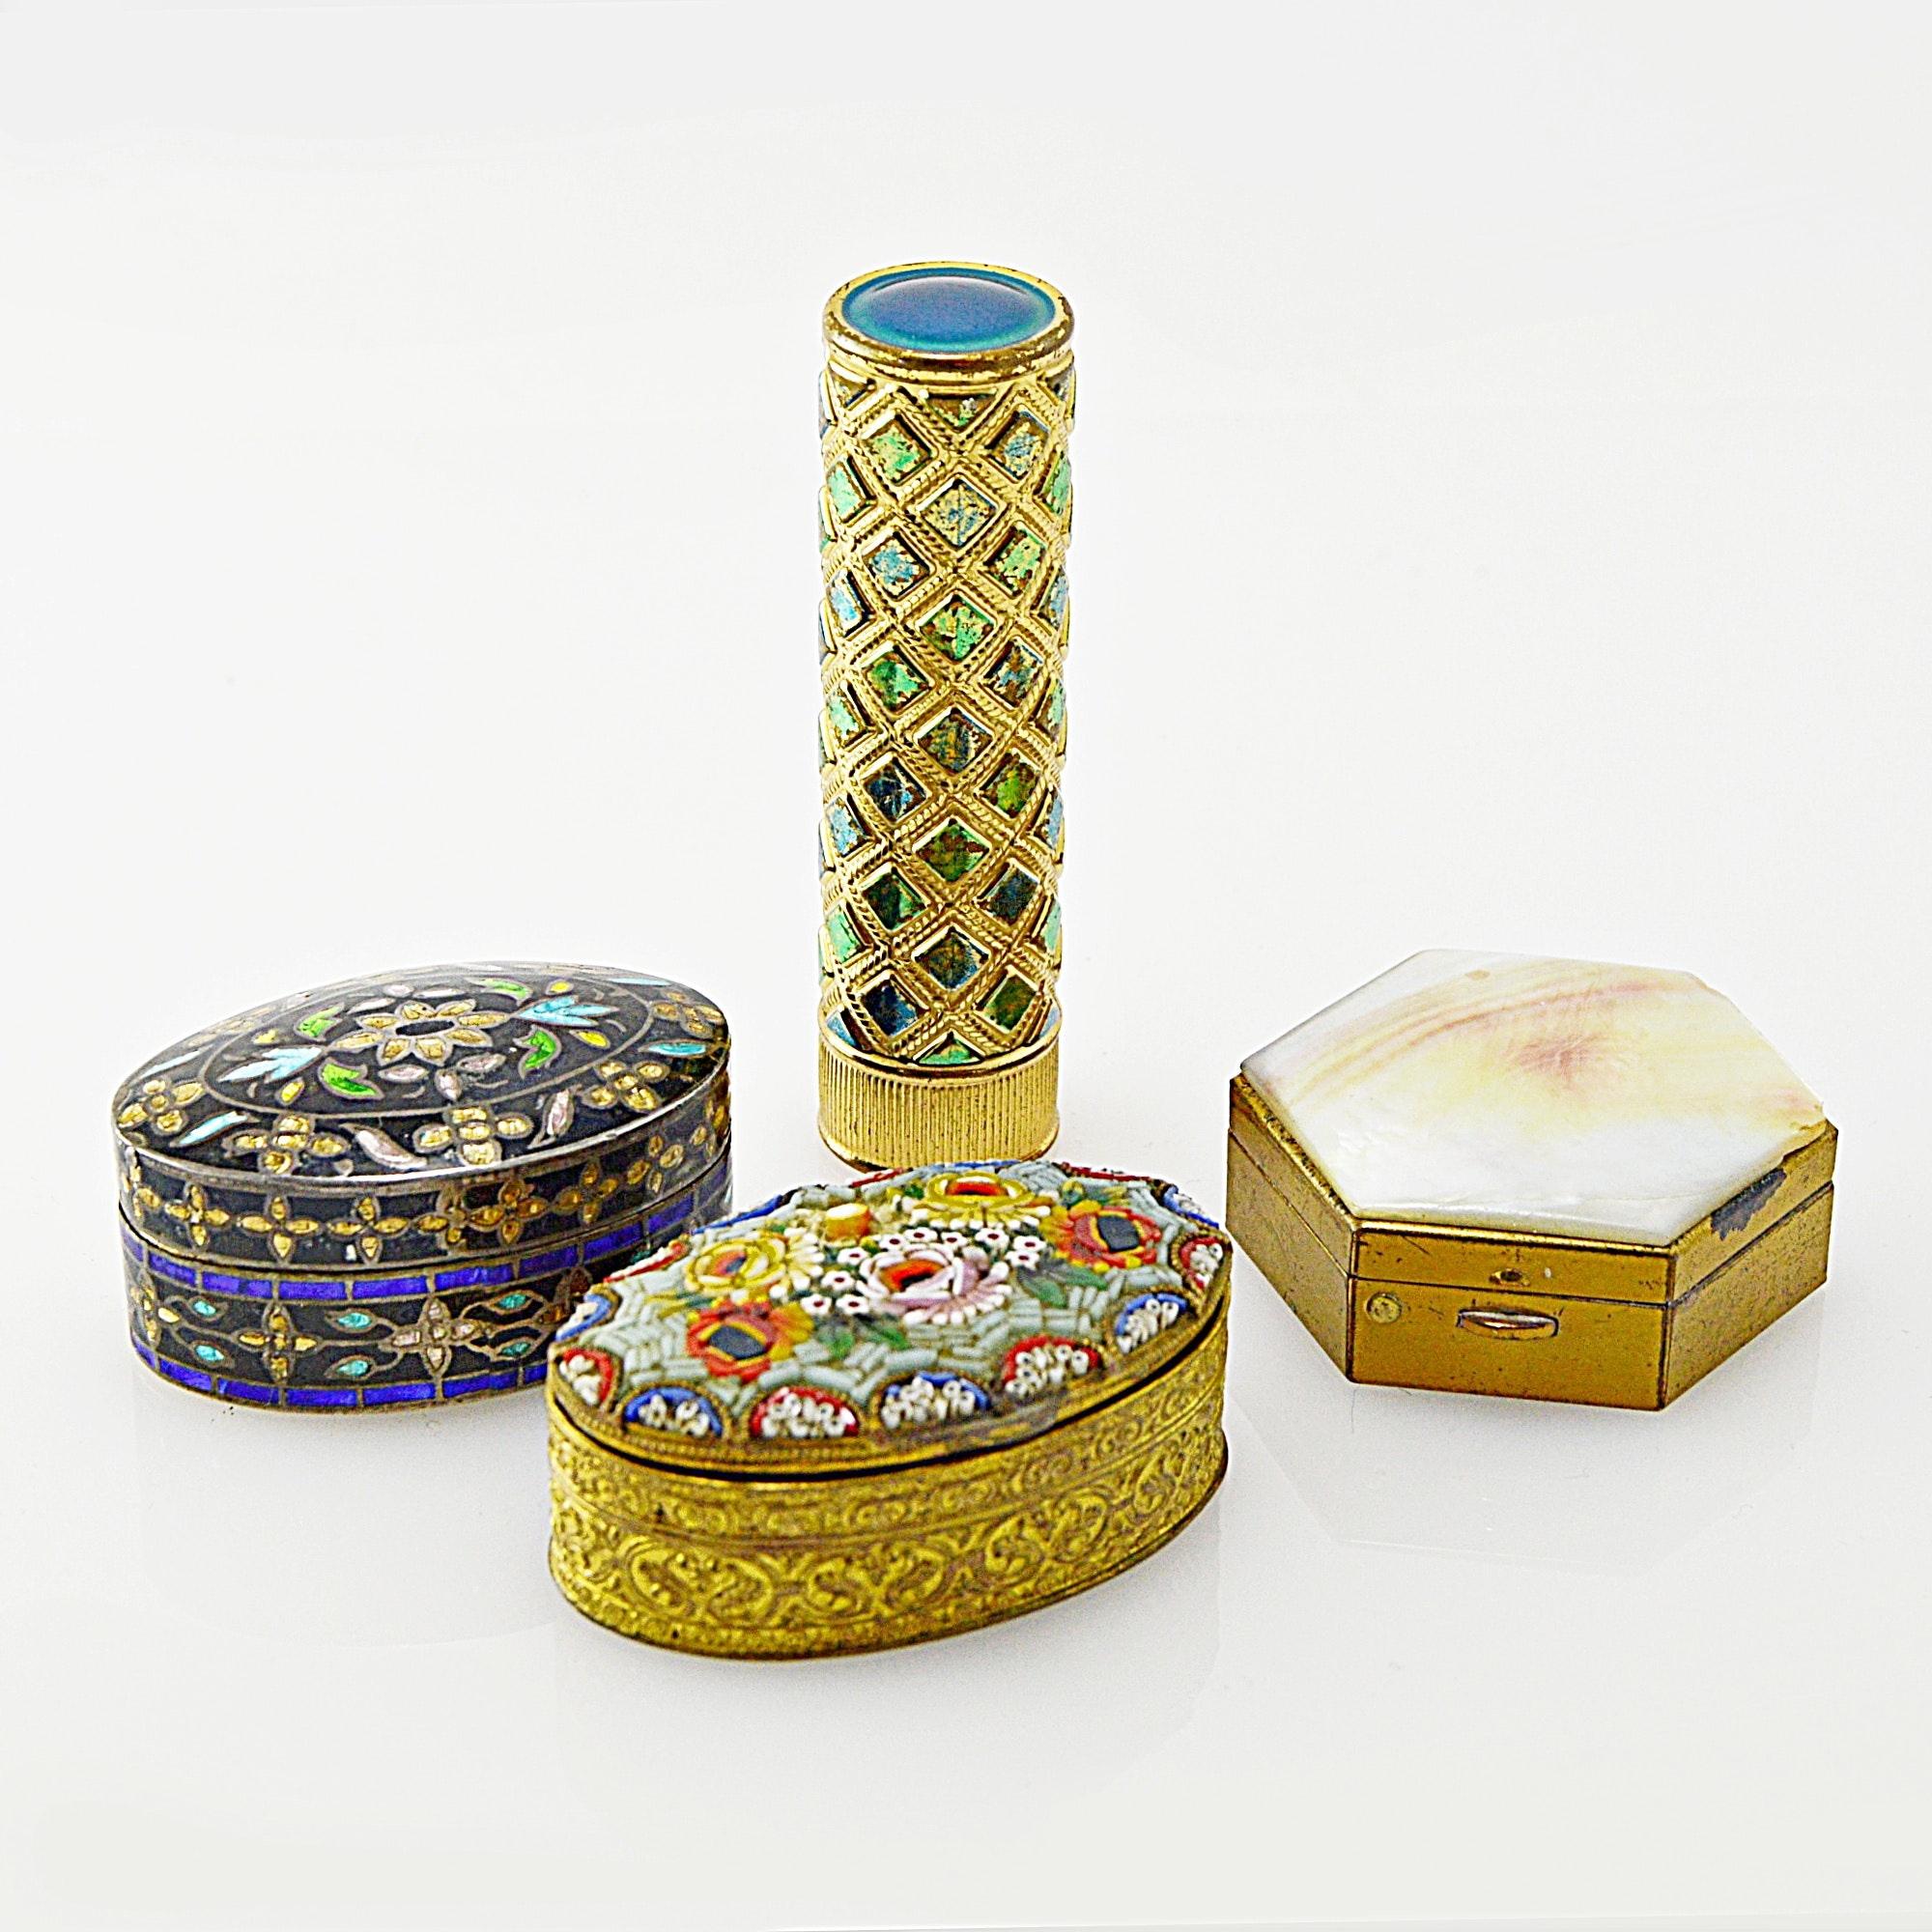 Vintage Mother-of-Pearl, Enamel and Micro Mosaic Pill Boxes, Lipstick